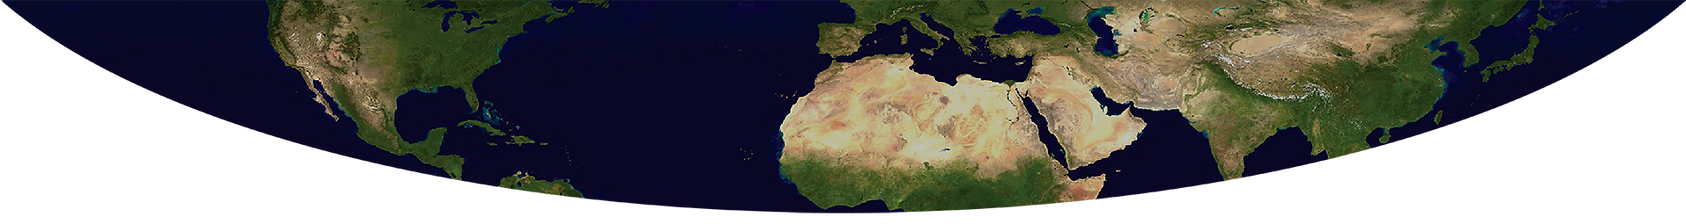 Global-locations-header-1.png